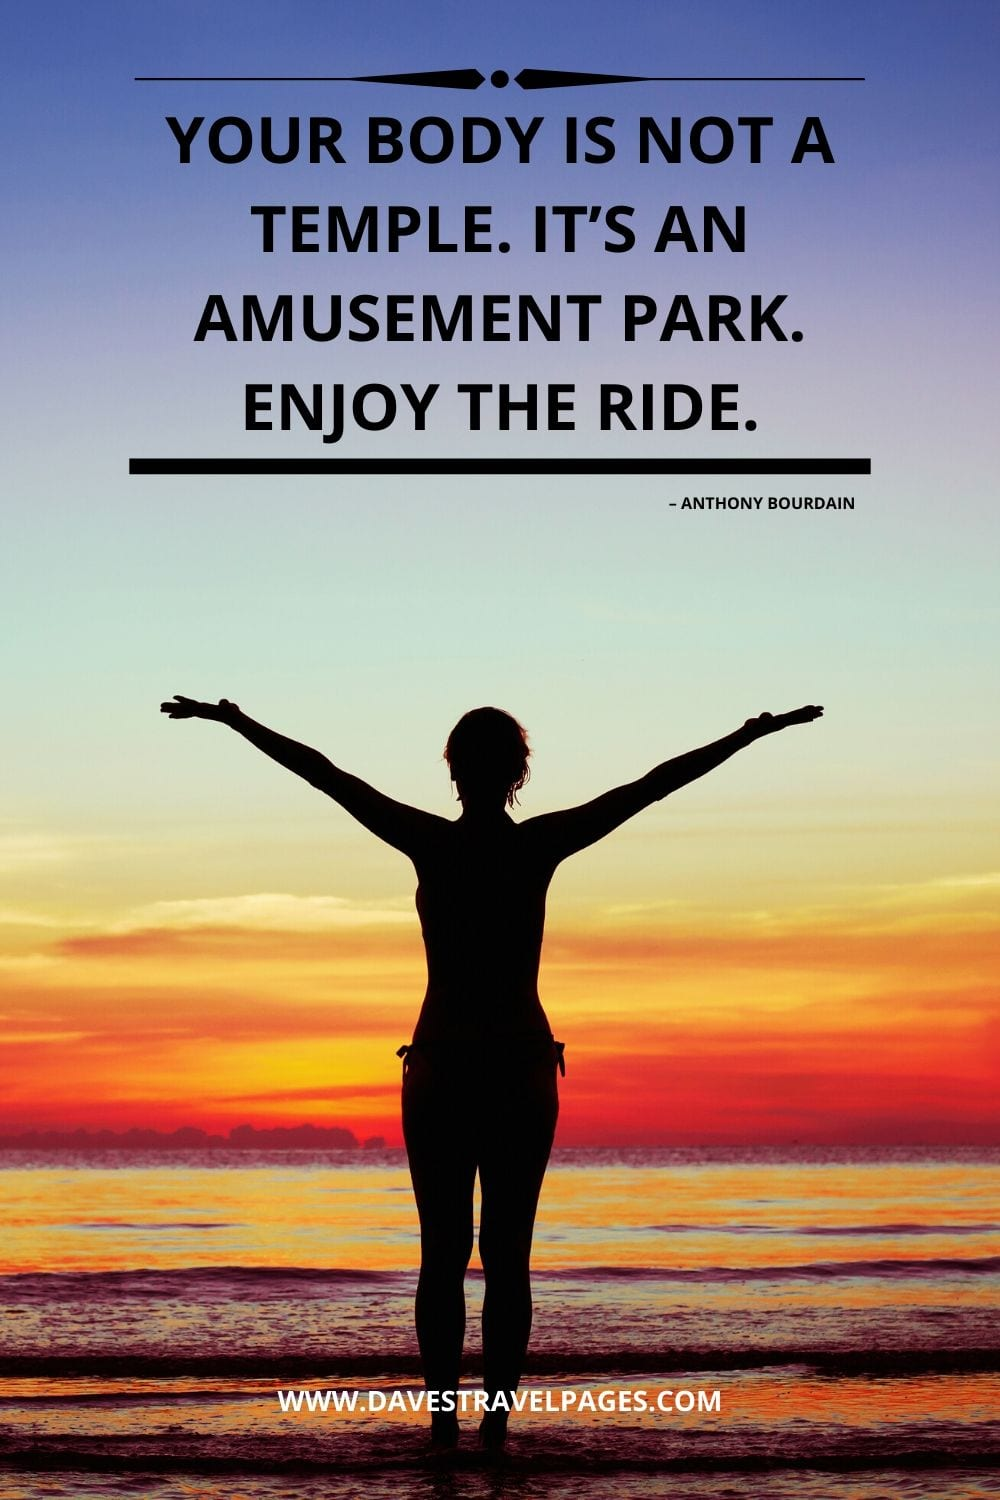 """""""Your body is not a temple. It's an amusement park. Enjoy the ride."""" – Quotes by Anthony Bourdain"""